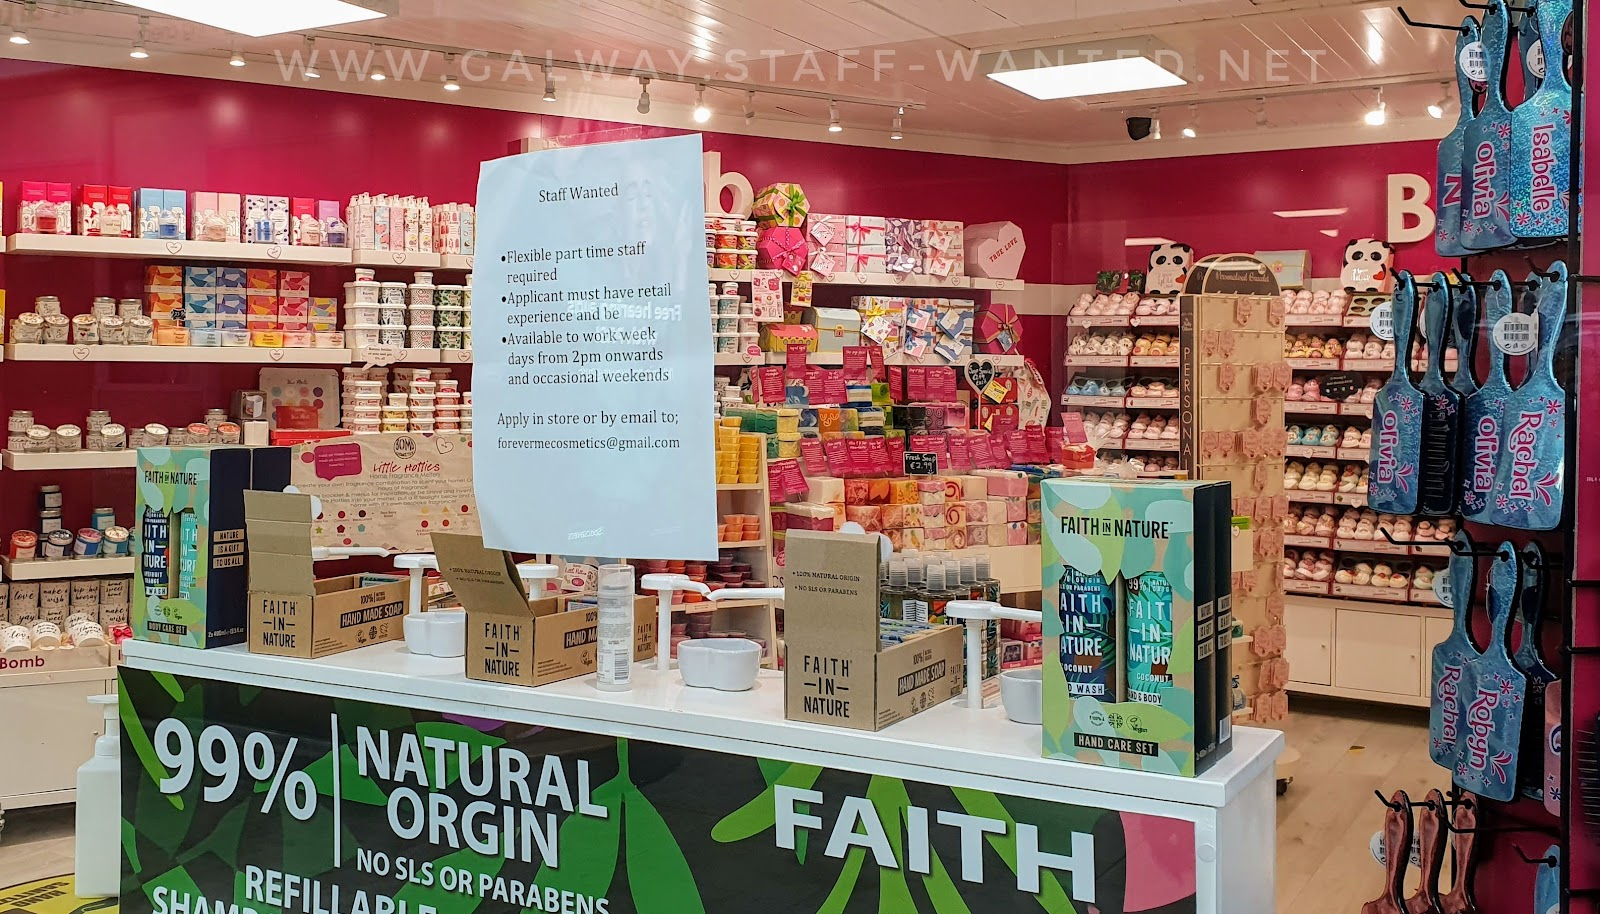 Shop window display with a job advert and a display of 99% natural origin - no sls or parabens - Faith in Nature beauty products